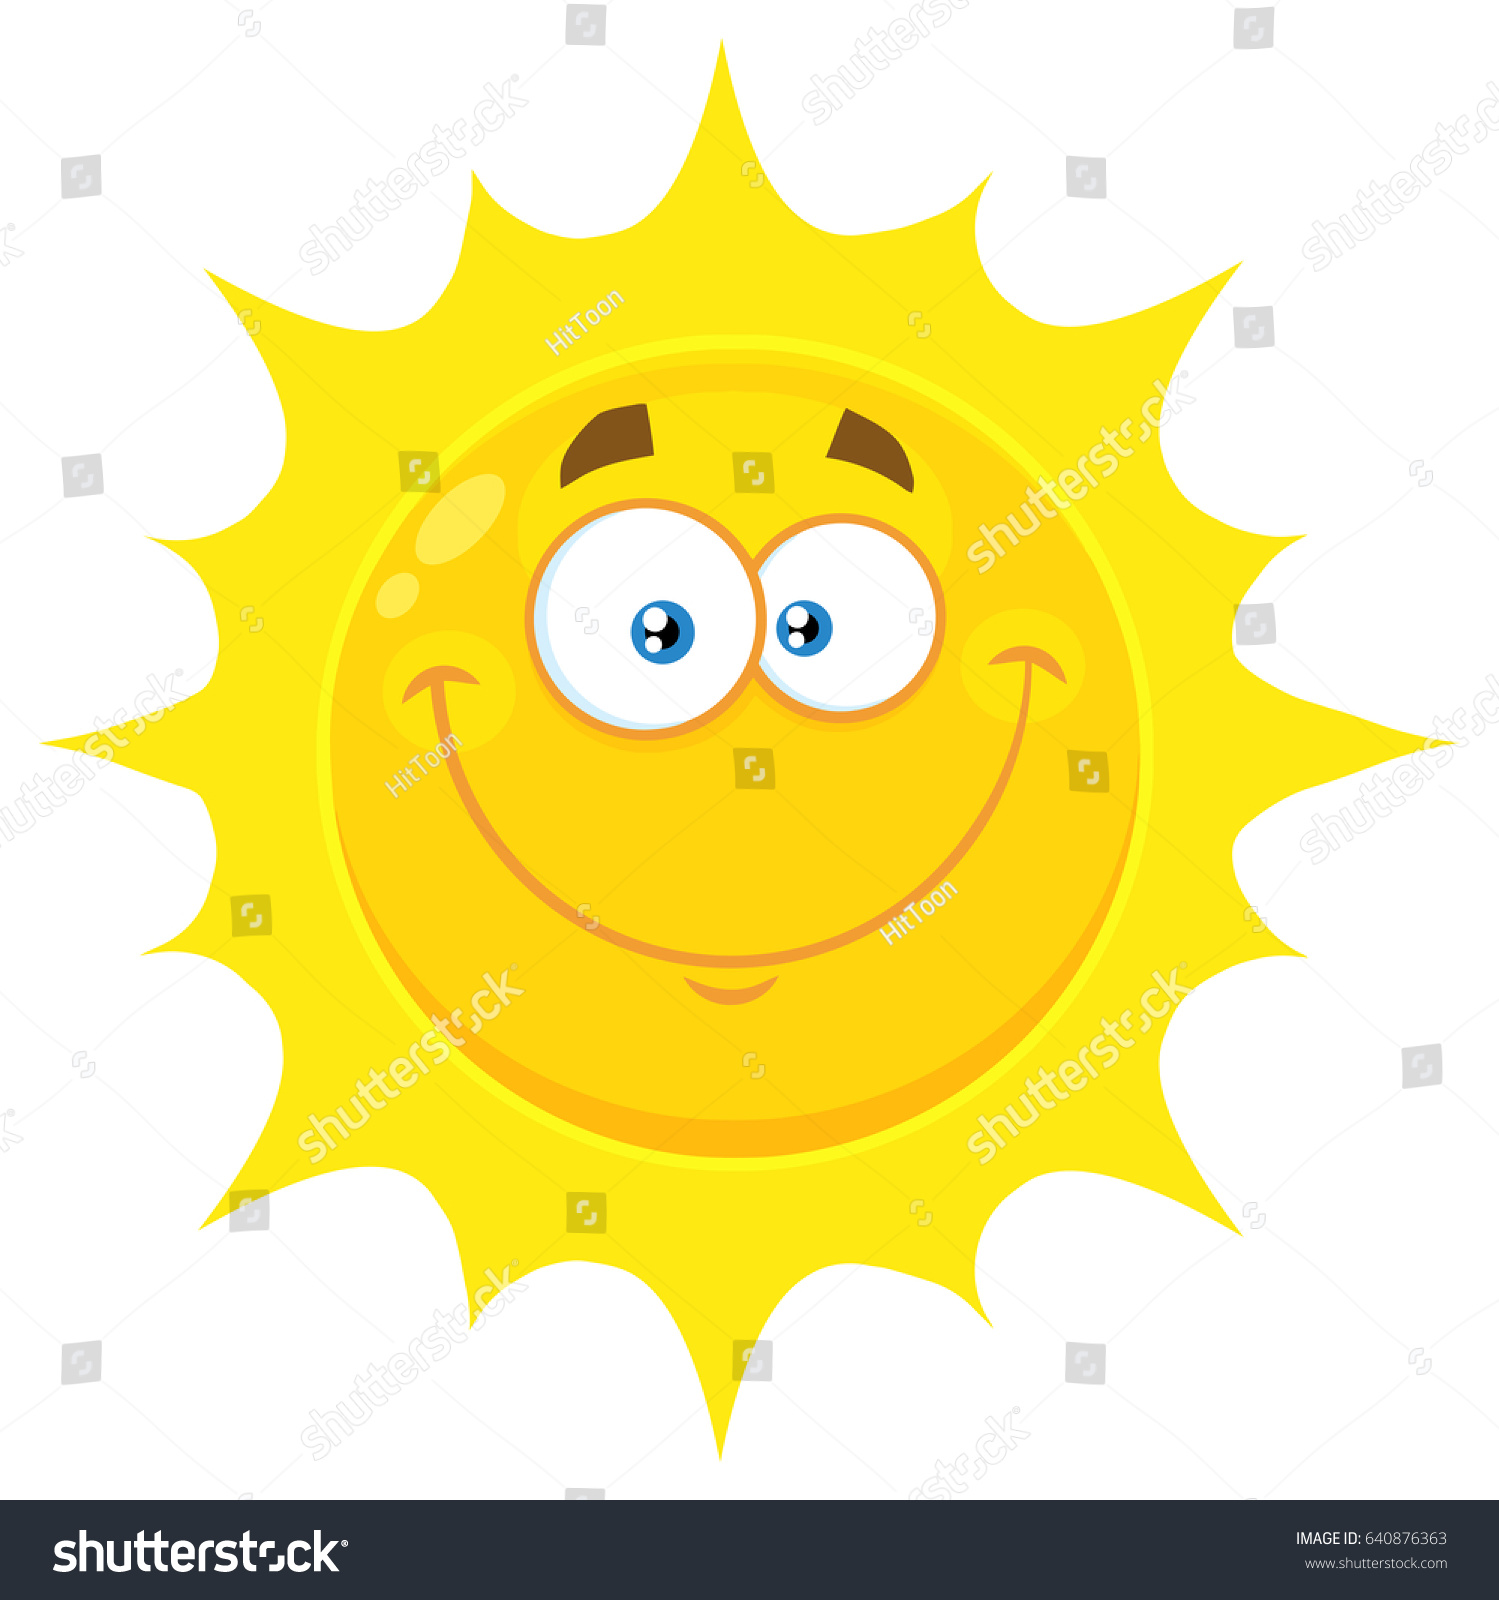 45e968c90b9d Smiling Yellow Sun Cartoon Emoji Face Character With Happy Expression.  Raster Illustration Isolated On White